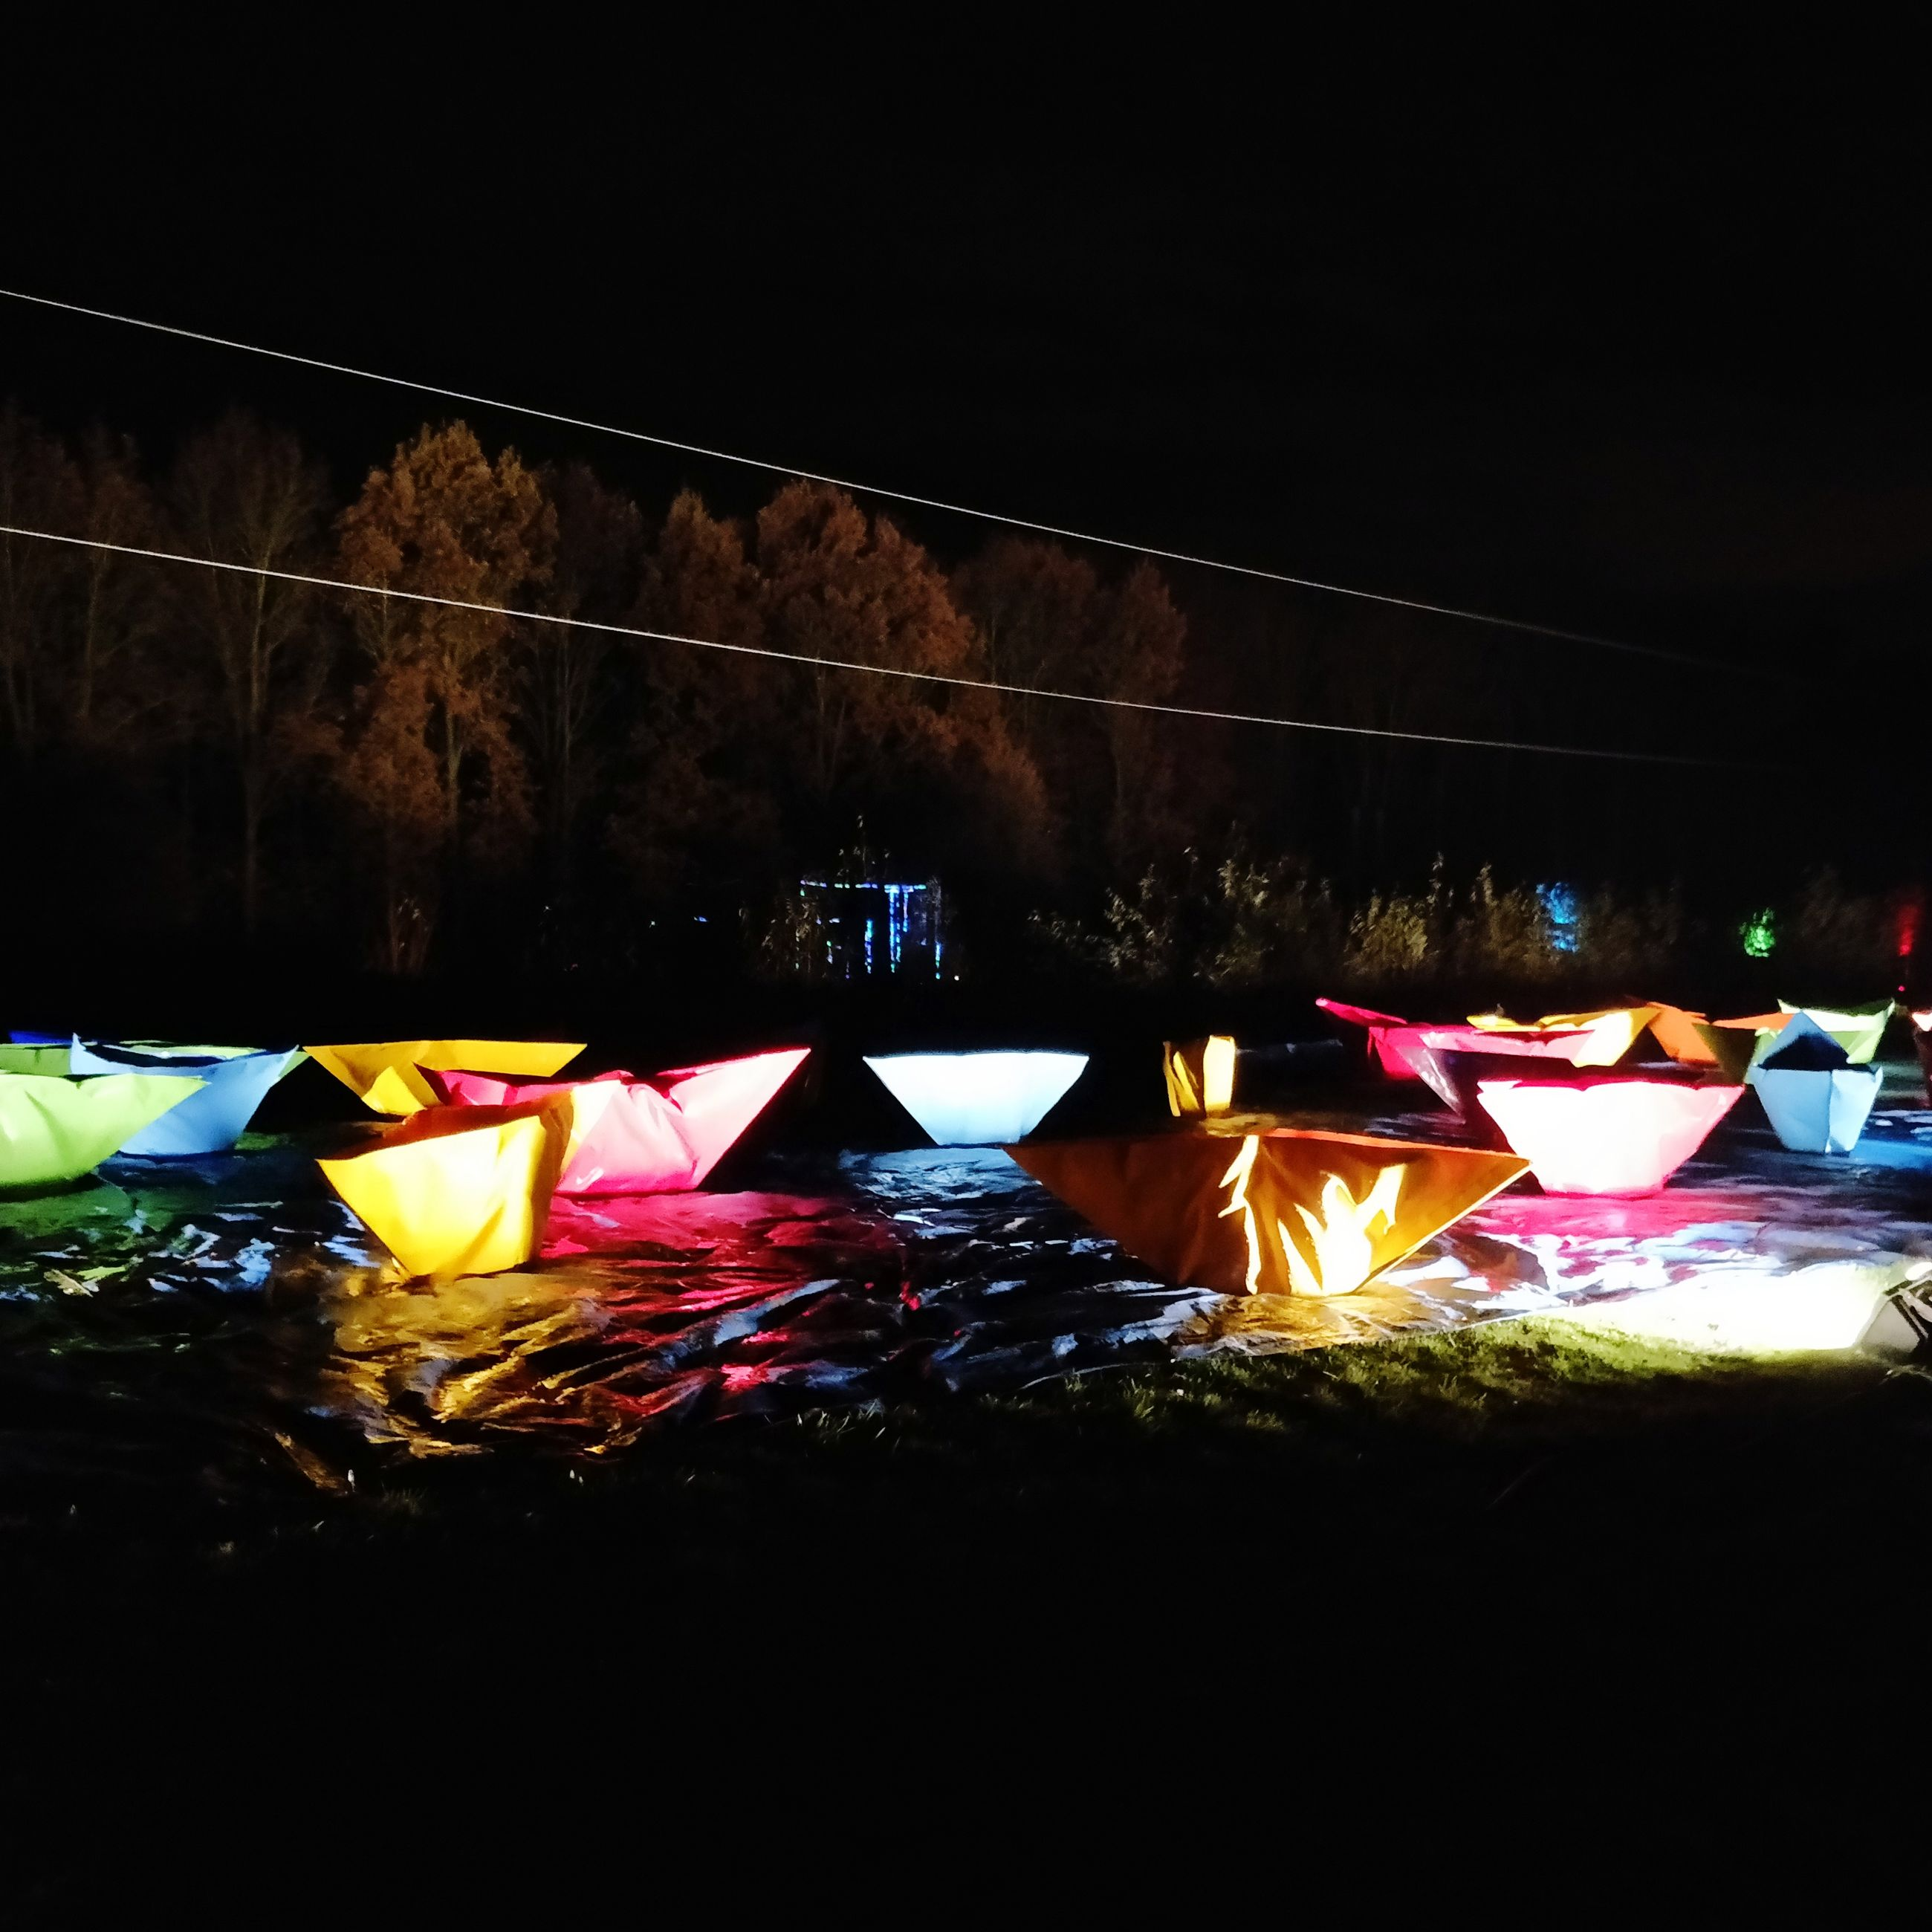 multi colored, illuminated, night, no people, glowing, nature, decoration, water, celebration, outdoors, hanging, lighting equipment, tent, land, burning, bunting, fire, copy space, dark, paper lantern